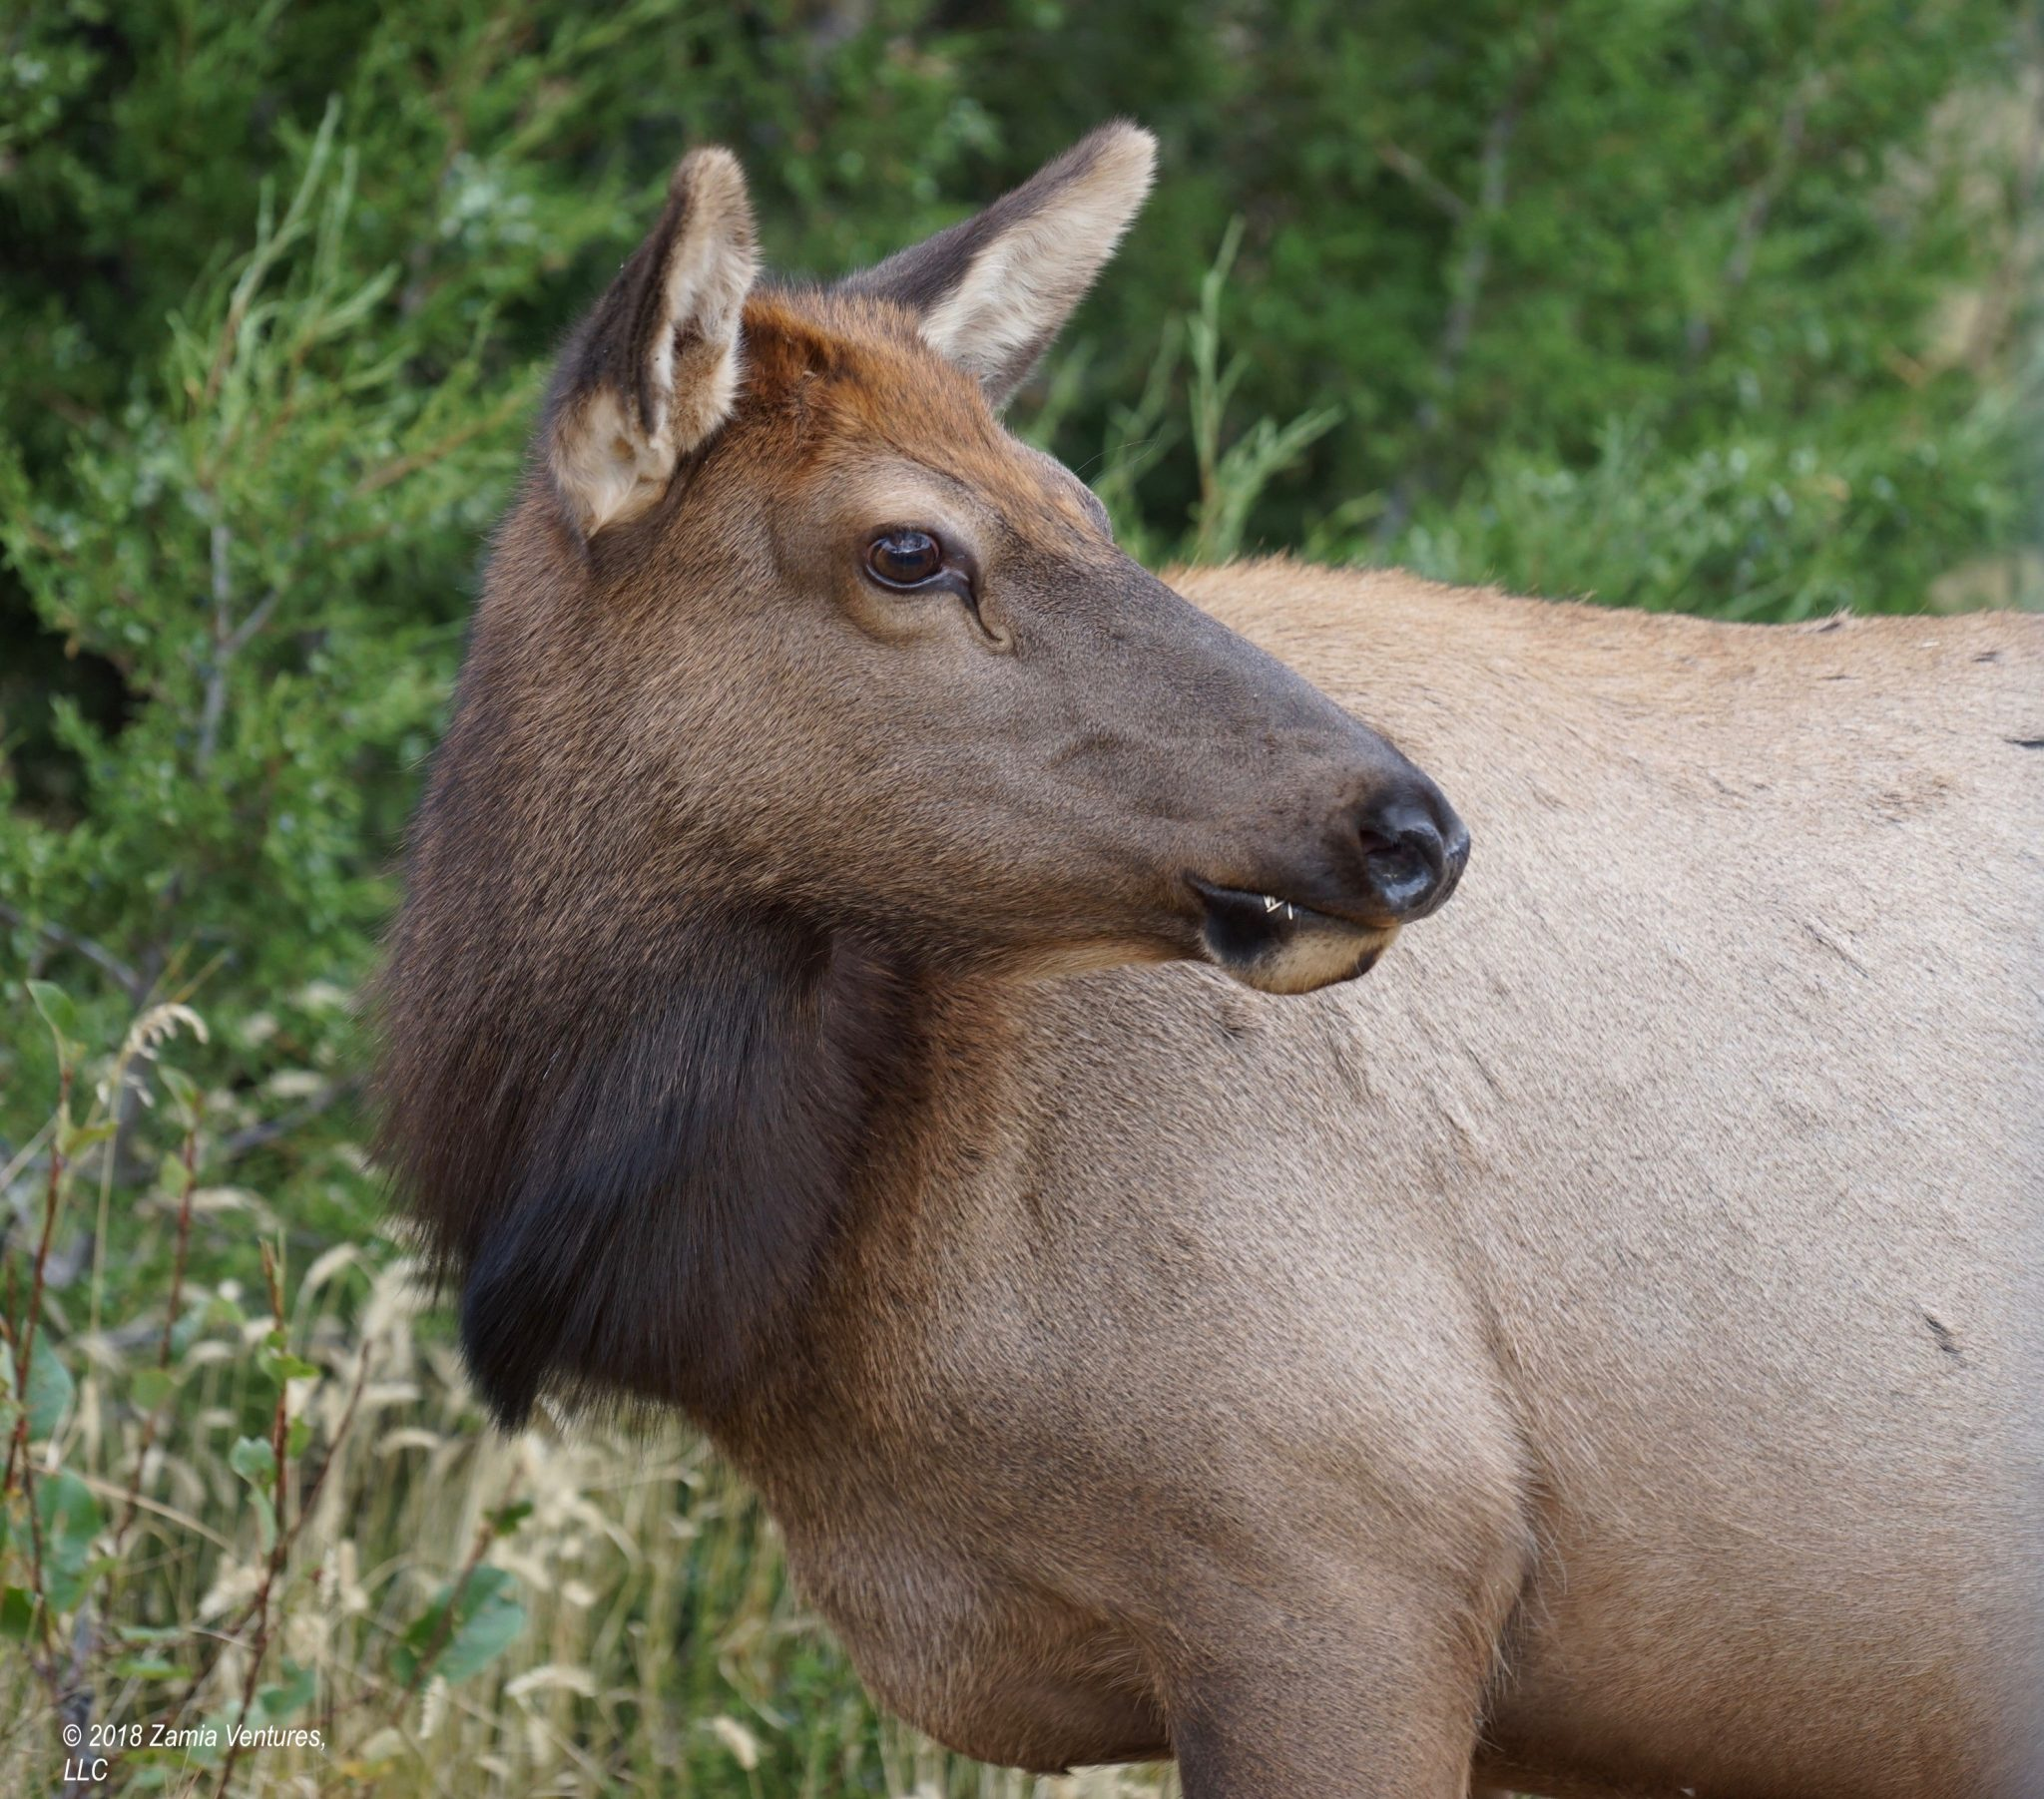 Yellowstone Part 2: Prolific Wildlife and Scenery in Northern Yellowstone